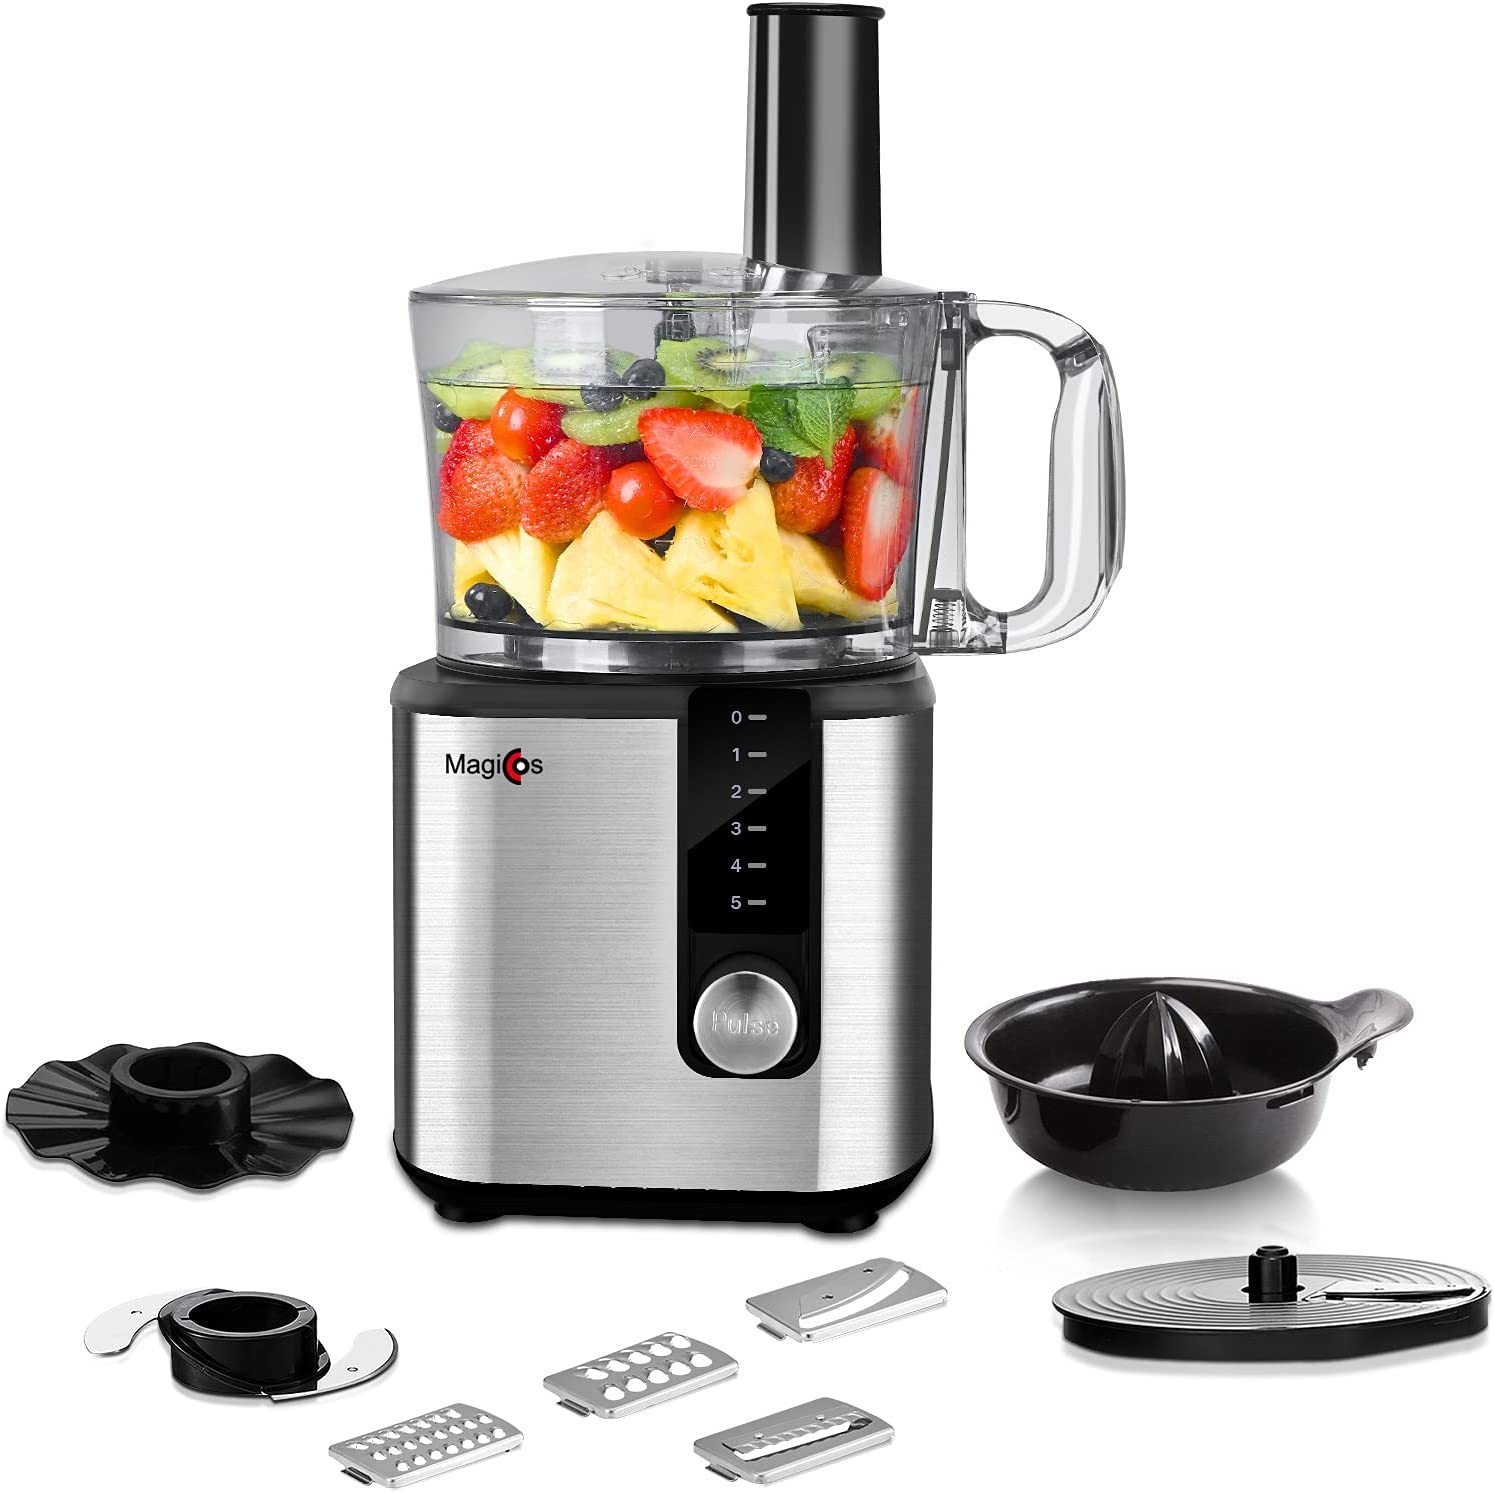 Food Processor - MAGICCOS 2021 Upgraded 7 in 1 Food Processor, 750W Powerful Food Chopper, 8 Cup, 5 Speeds & Pulse for Chopping, (Wave) Slicing, Pureeing, Fine/Coarse Grating, Juicing & Emulsifying